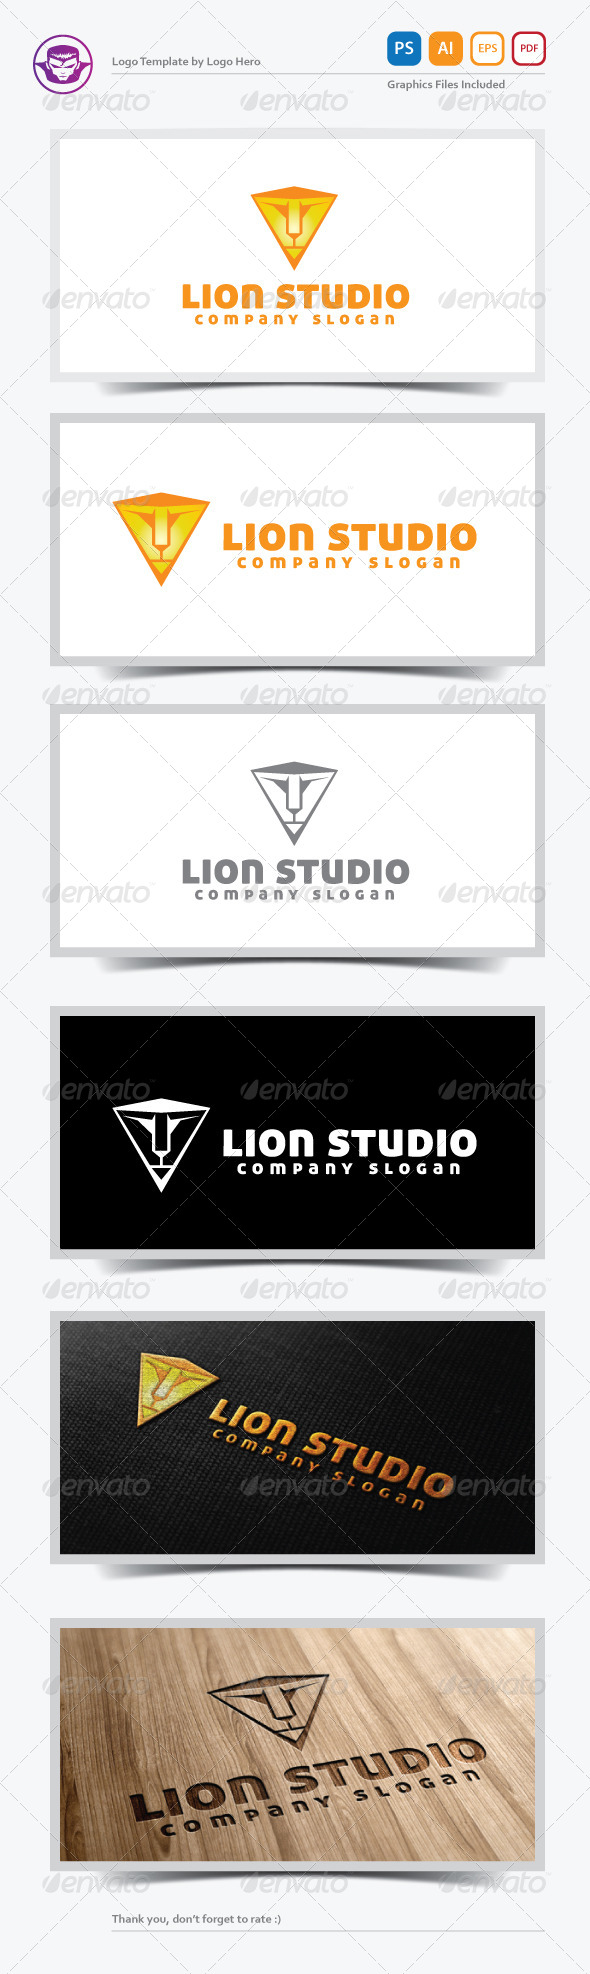 Lion Studio Logo Template